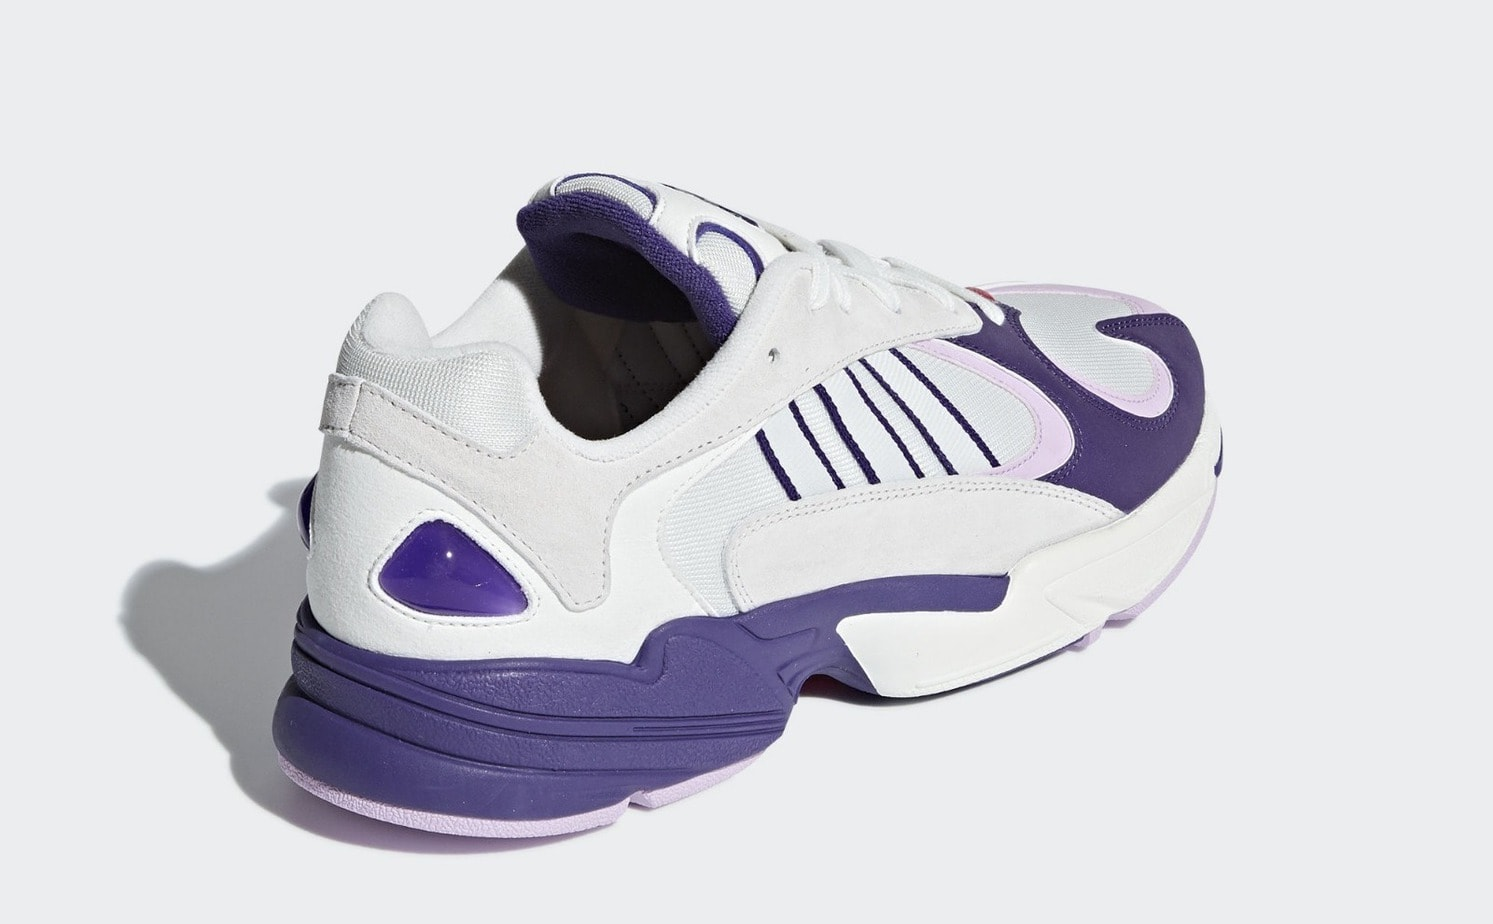 """new arrival bb7fb dd52f Dragon Ball Z x adidas Yung-1 """"Frieza"""" Release Date August 2018. Price  150. Style Code D97048"""